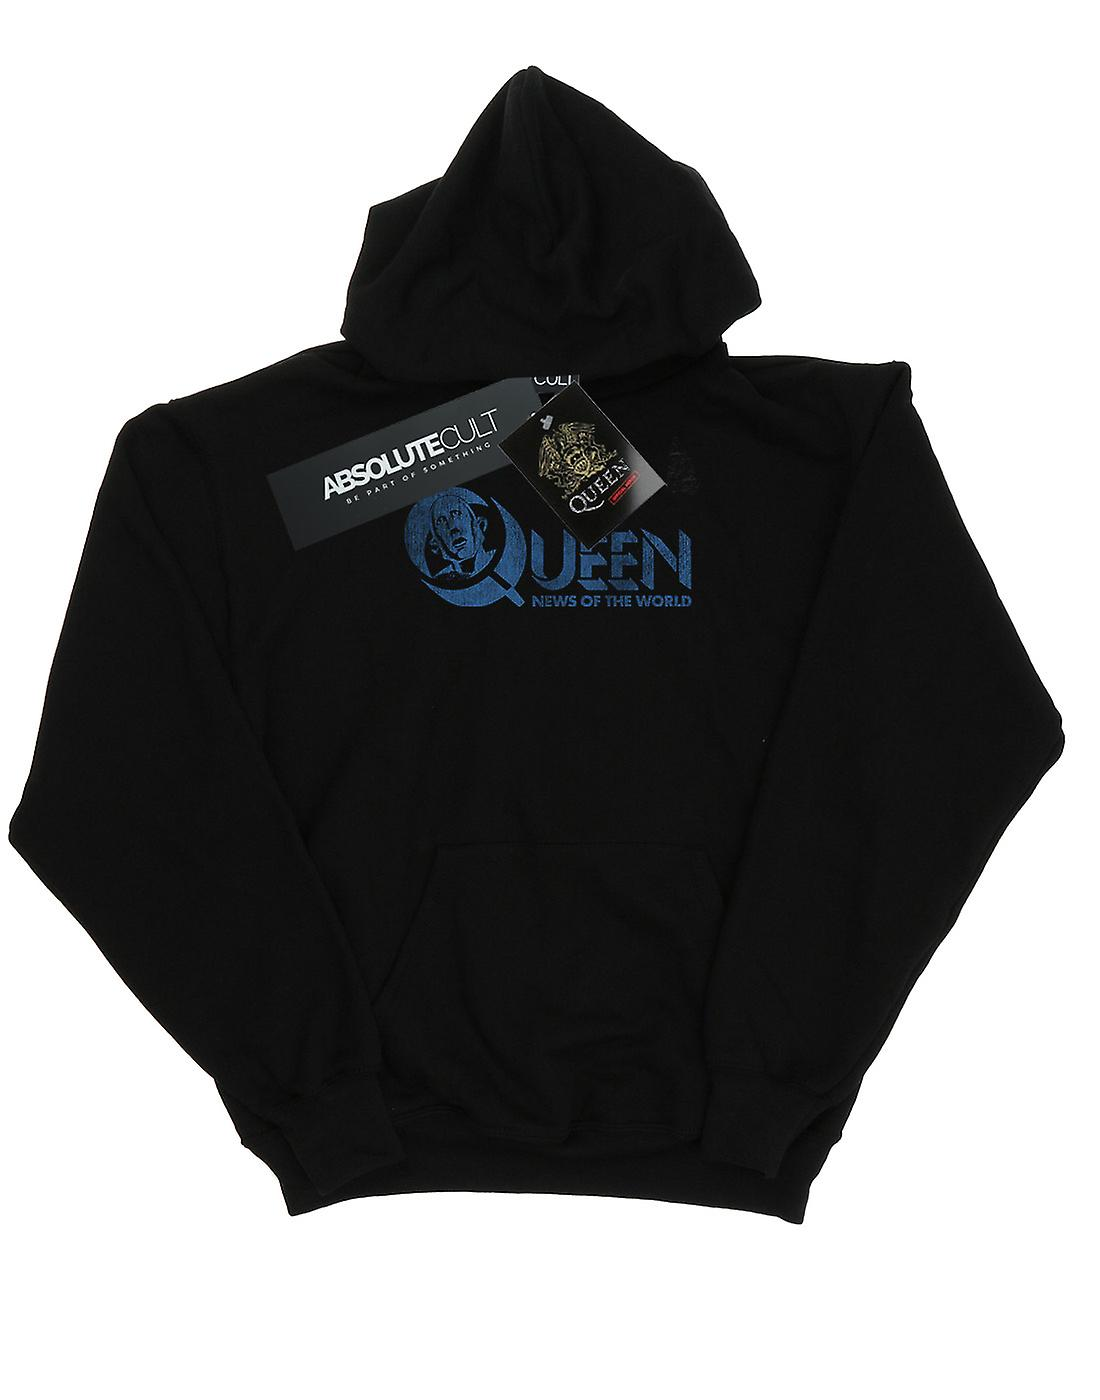 Queen Men's Distressed News Of The World Hoodie